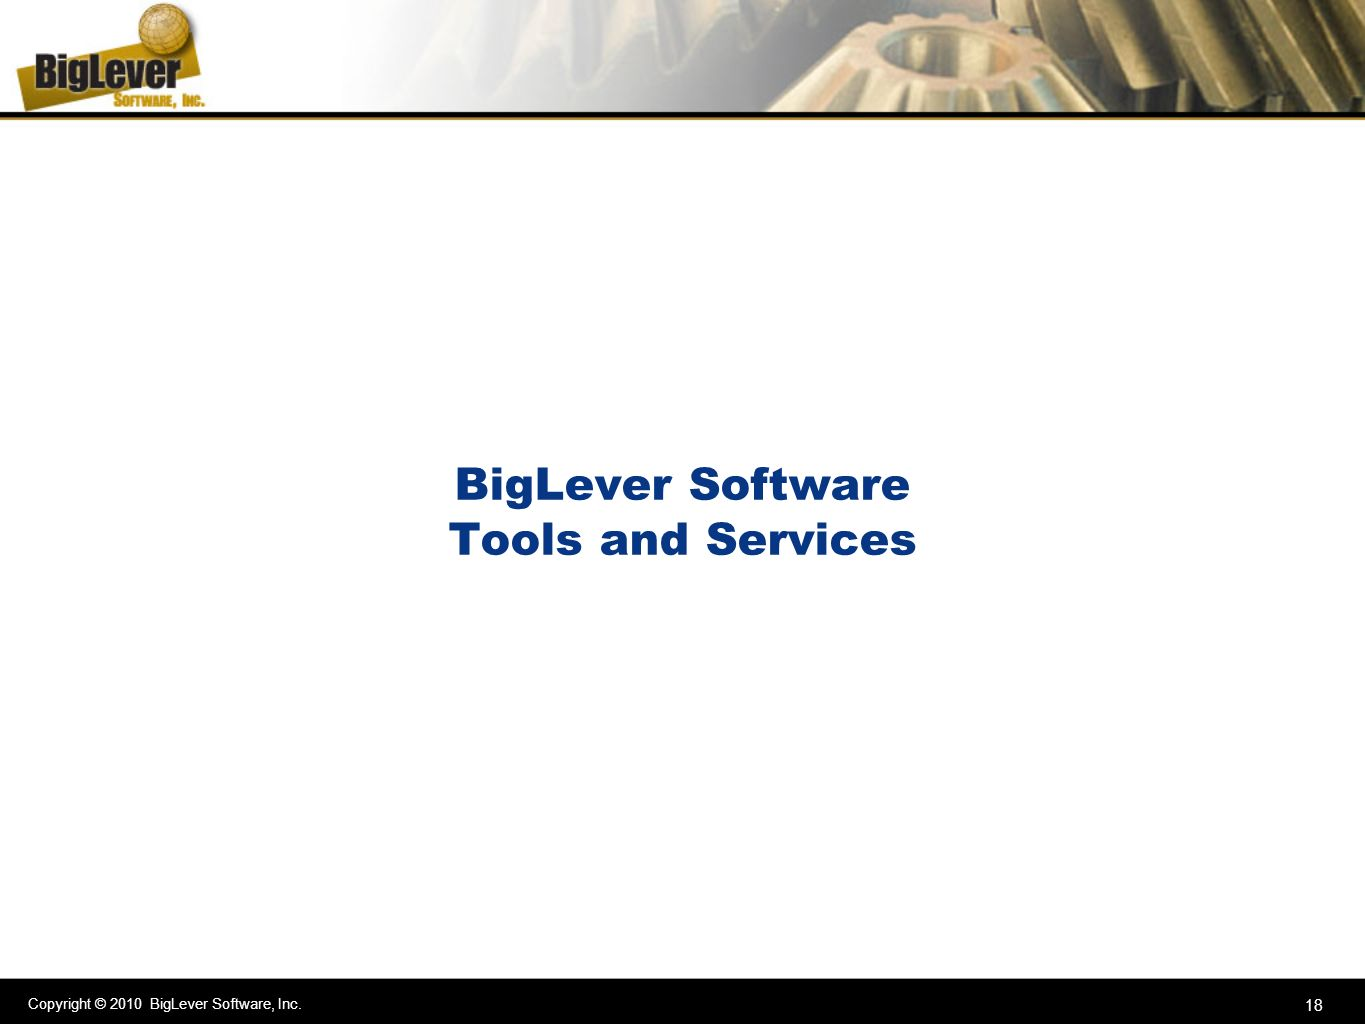 BigLever Software Tools and Services